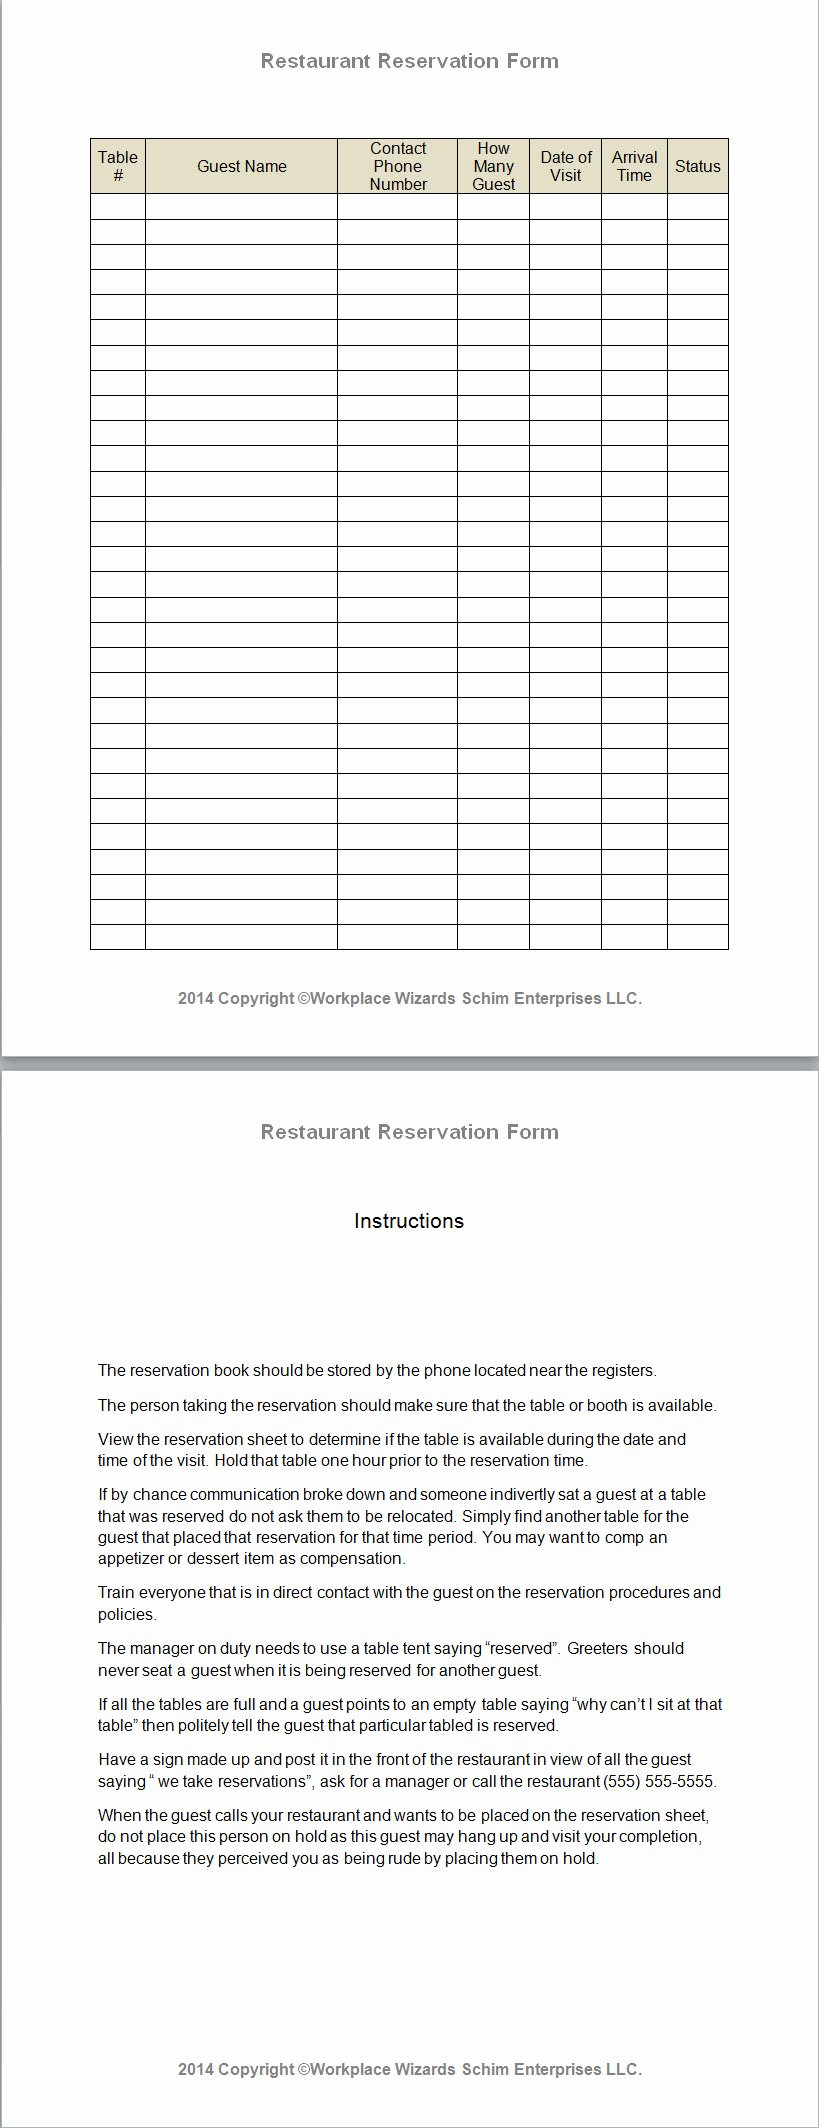 Table Reservation Template Unique Restaurant Reservation form Workplace Wizards New